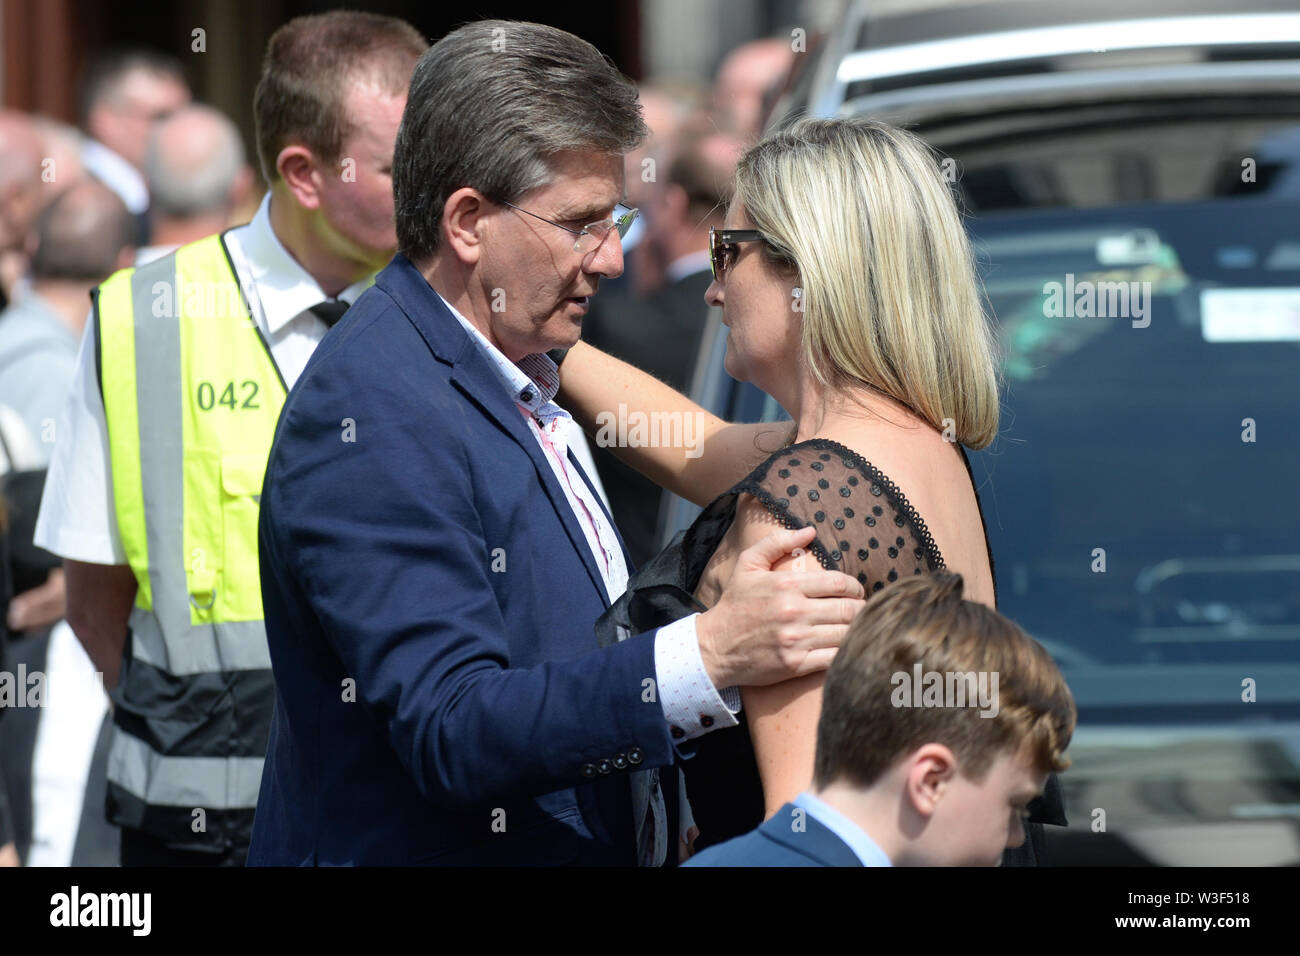 Daniel O'Donnell at the funeral of Father Ted star Brendan Grace at the Church of St. Nicholas of Myra, Dublin. - Stock Image